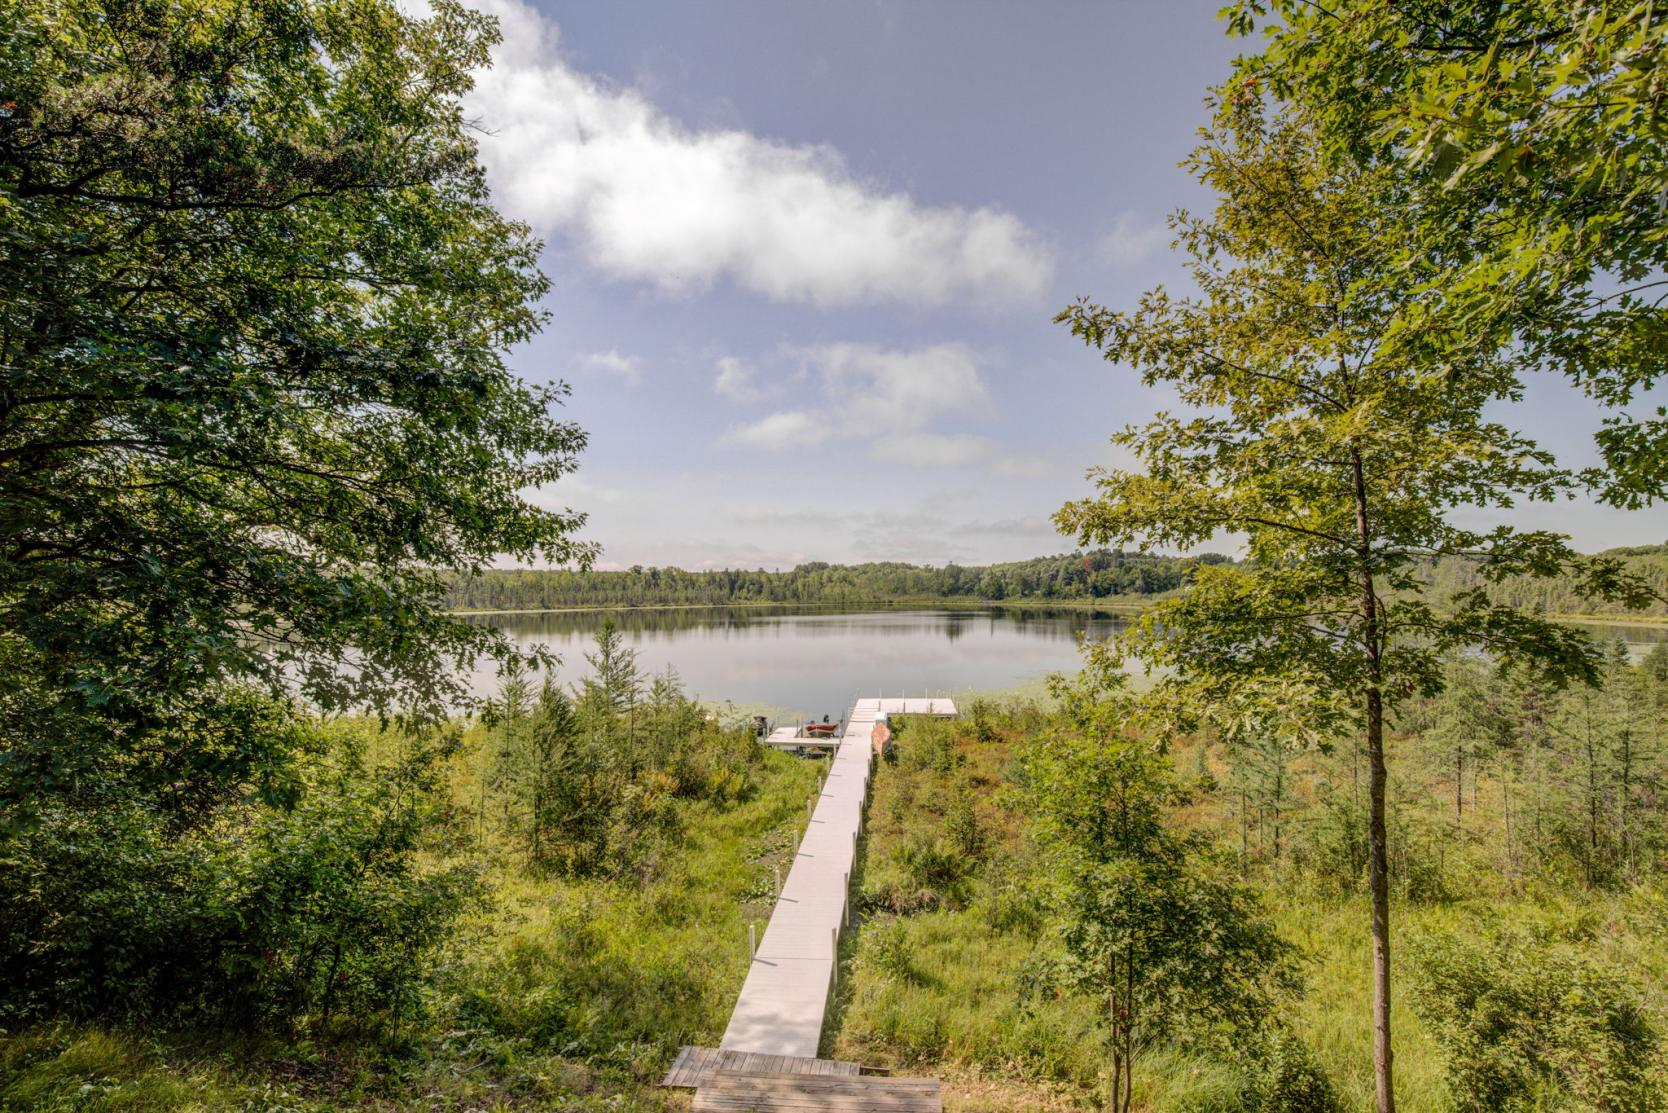 Land for sale on a lake in MN